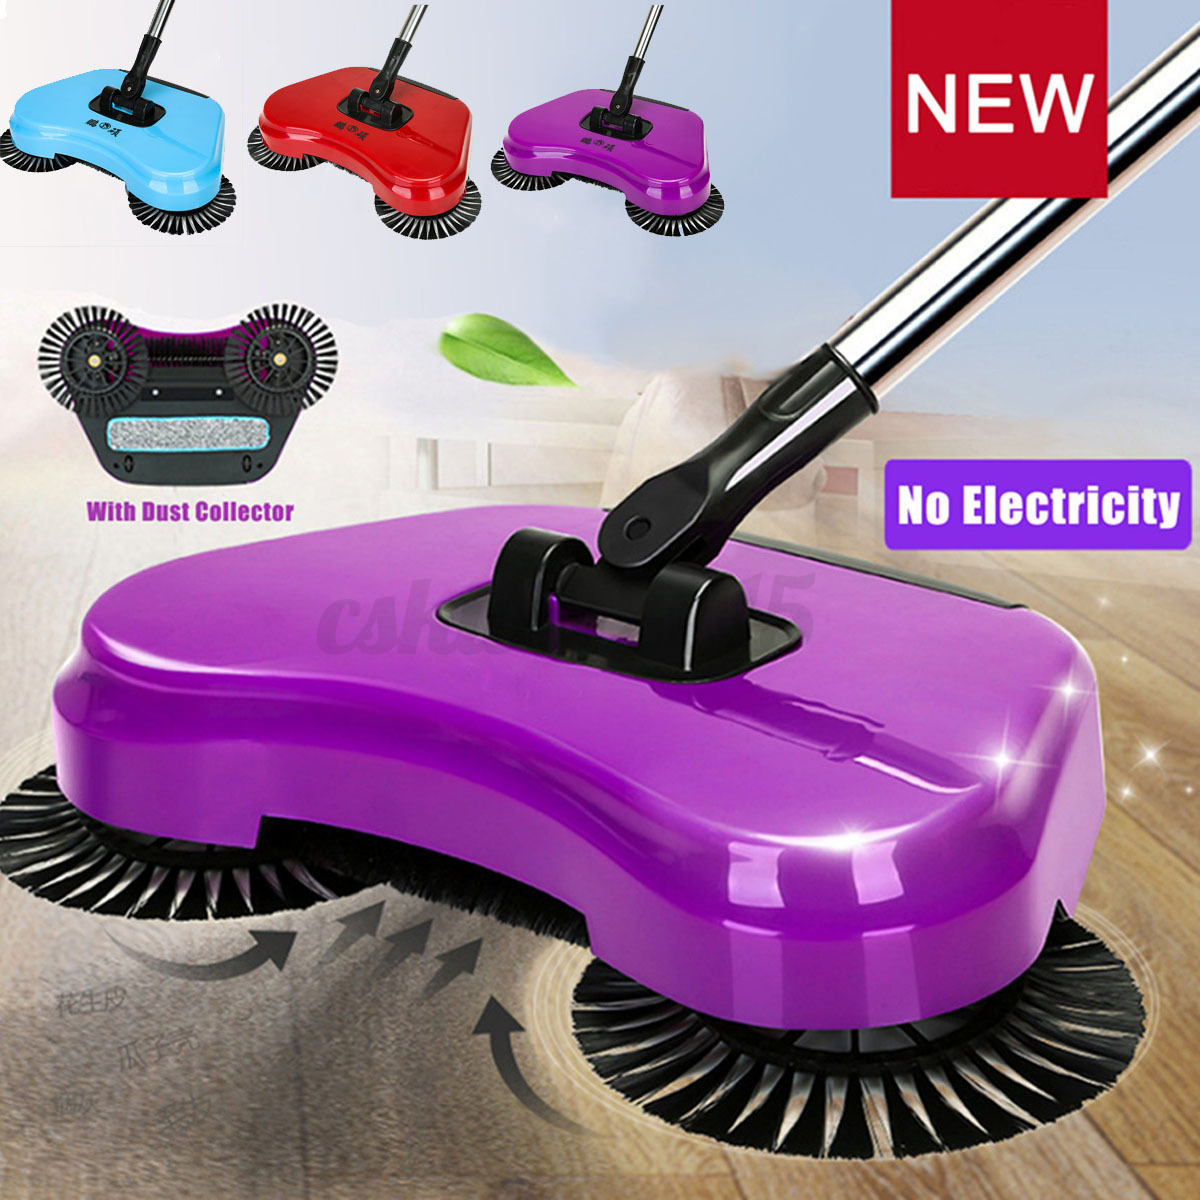 spin hand push sweeper broom household floor cleaning mop without electricity ebay. Black Bedroom Furniture Sets. Home Design Ideas